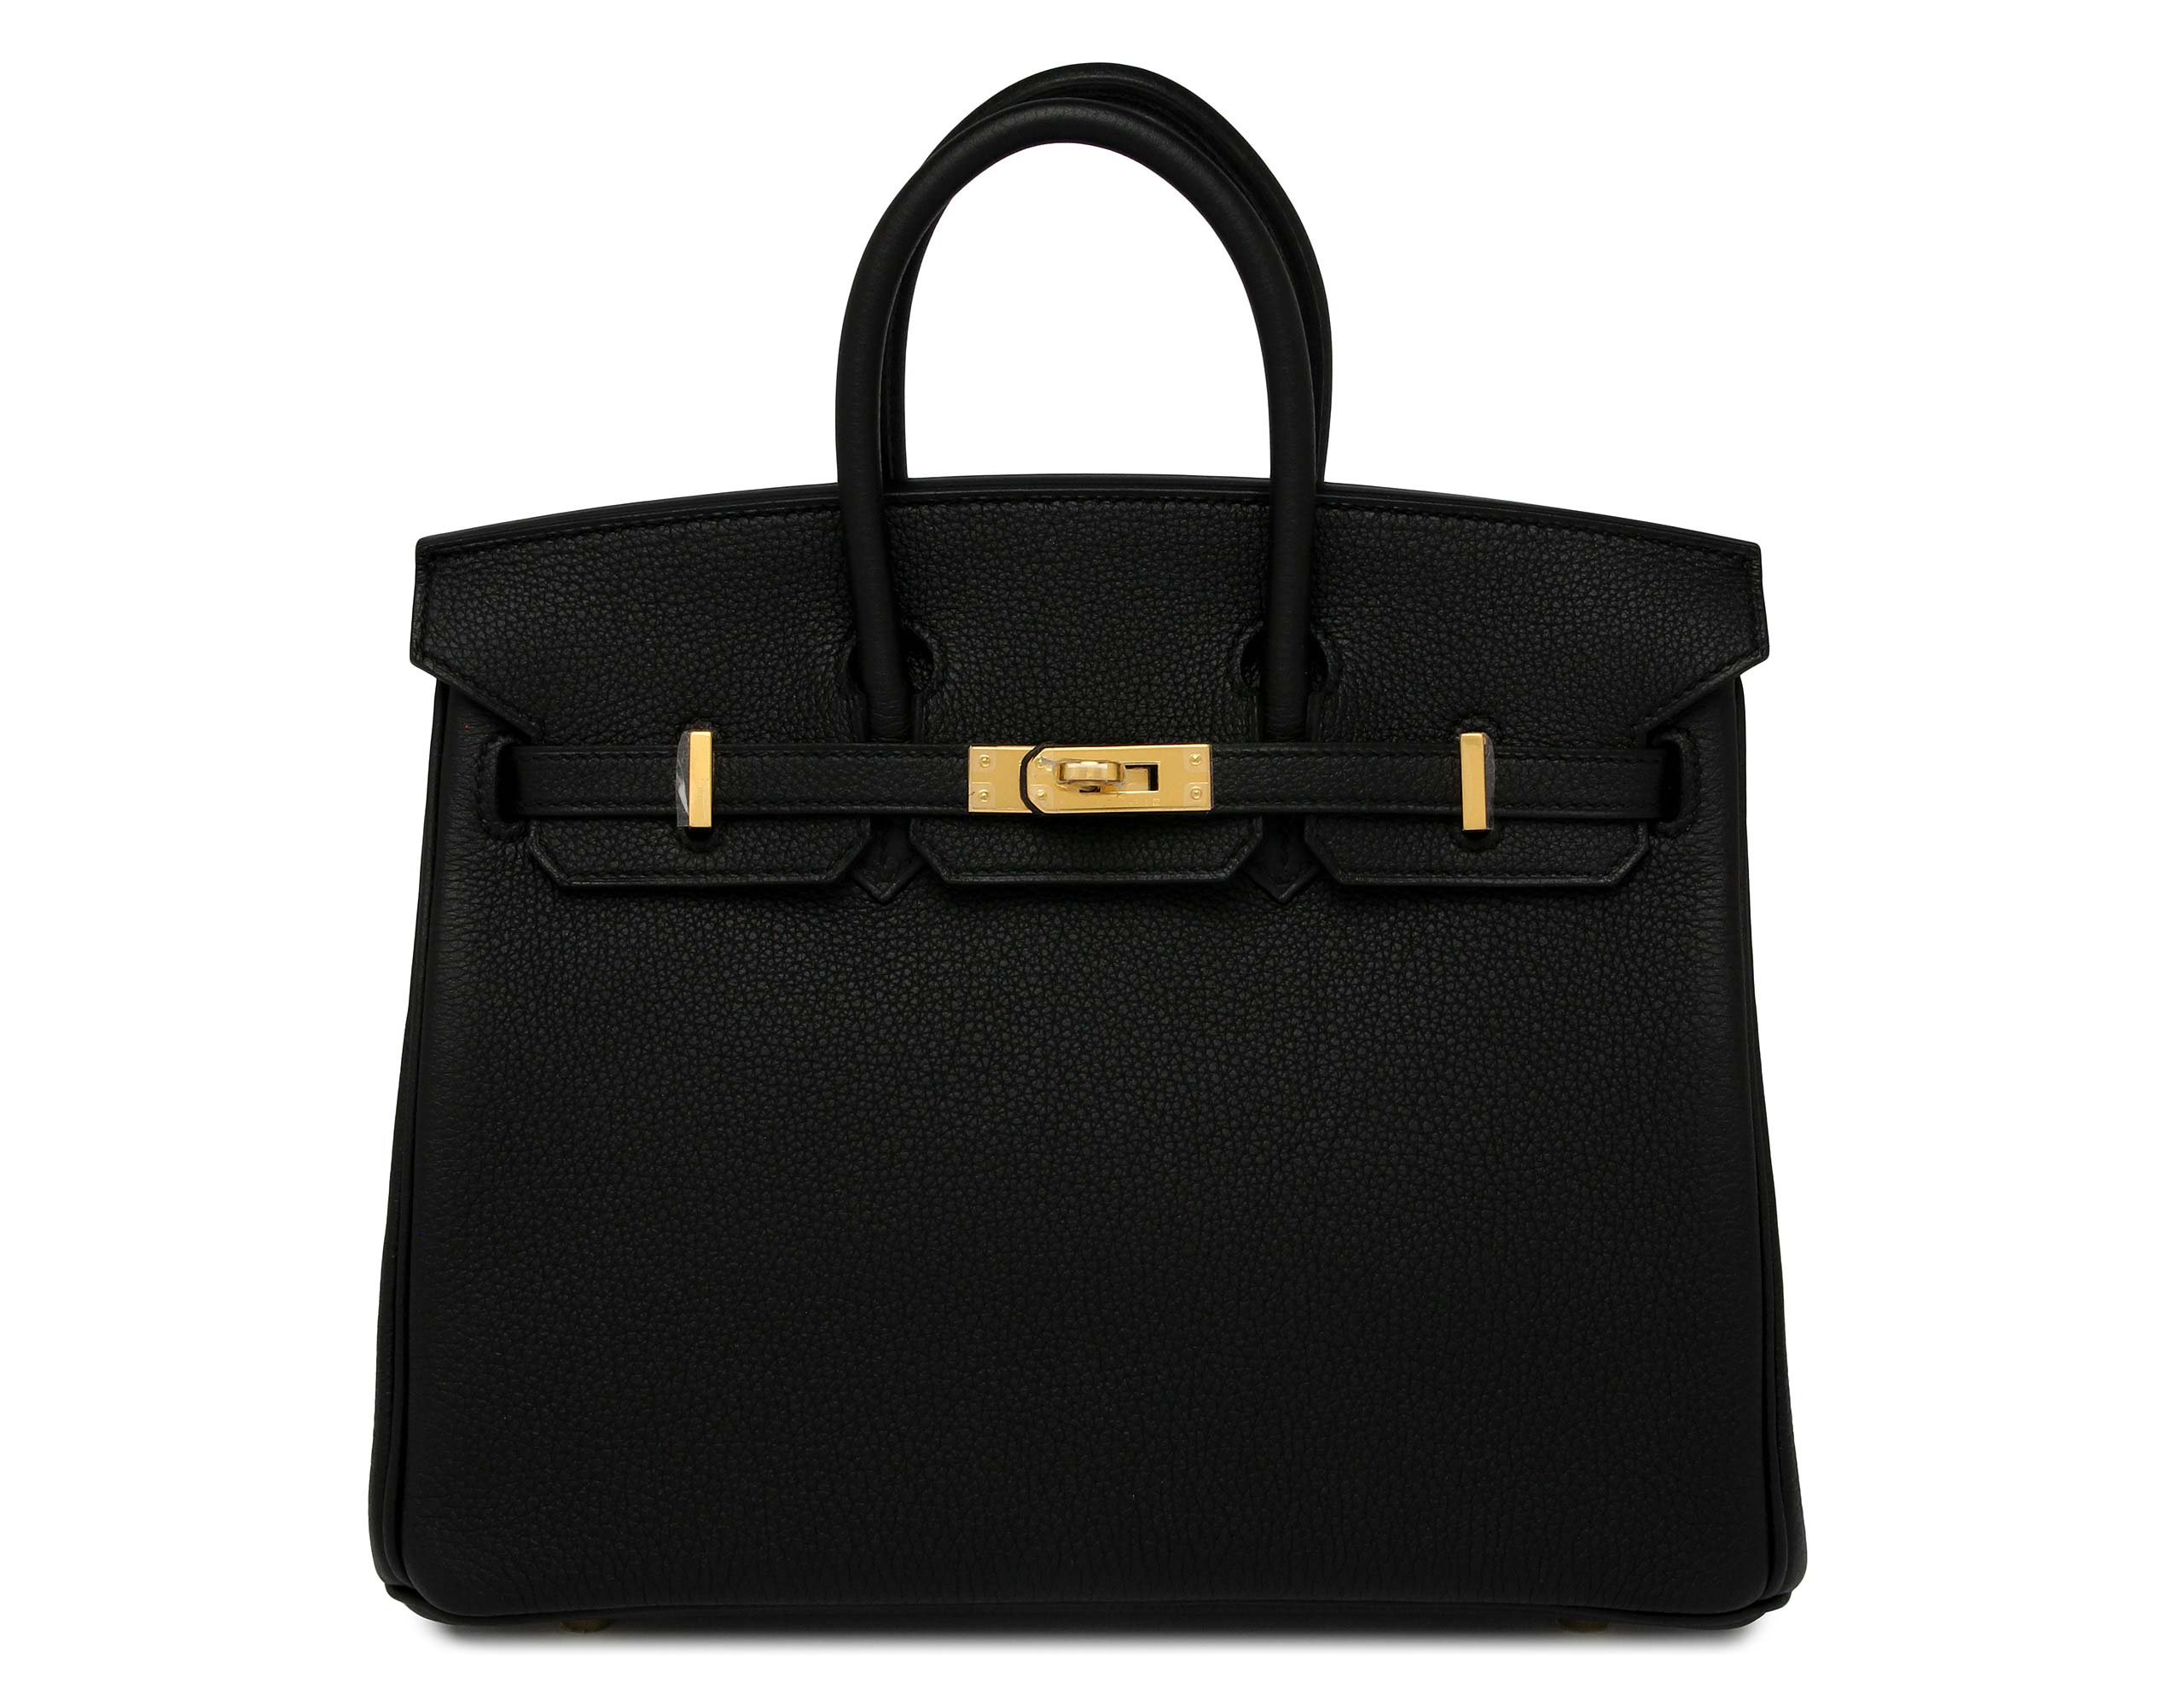 baf0a71ca4 Hermes Birkin Black Togo 25cm with Gold Hardware ...